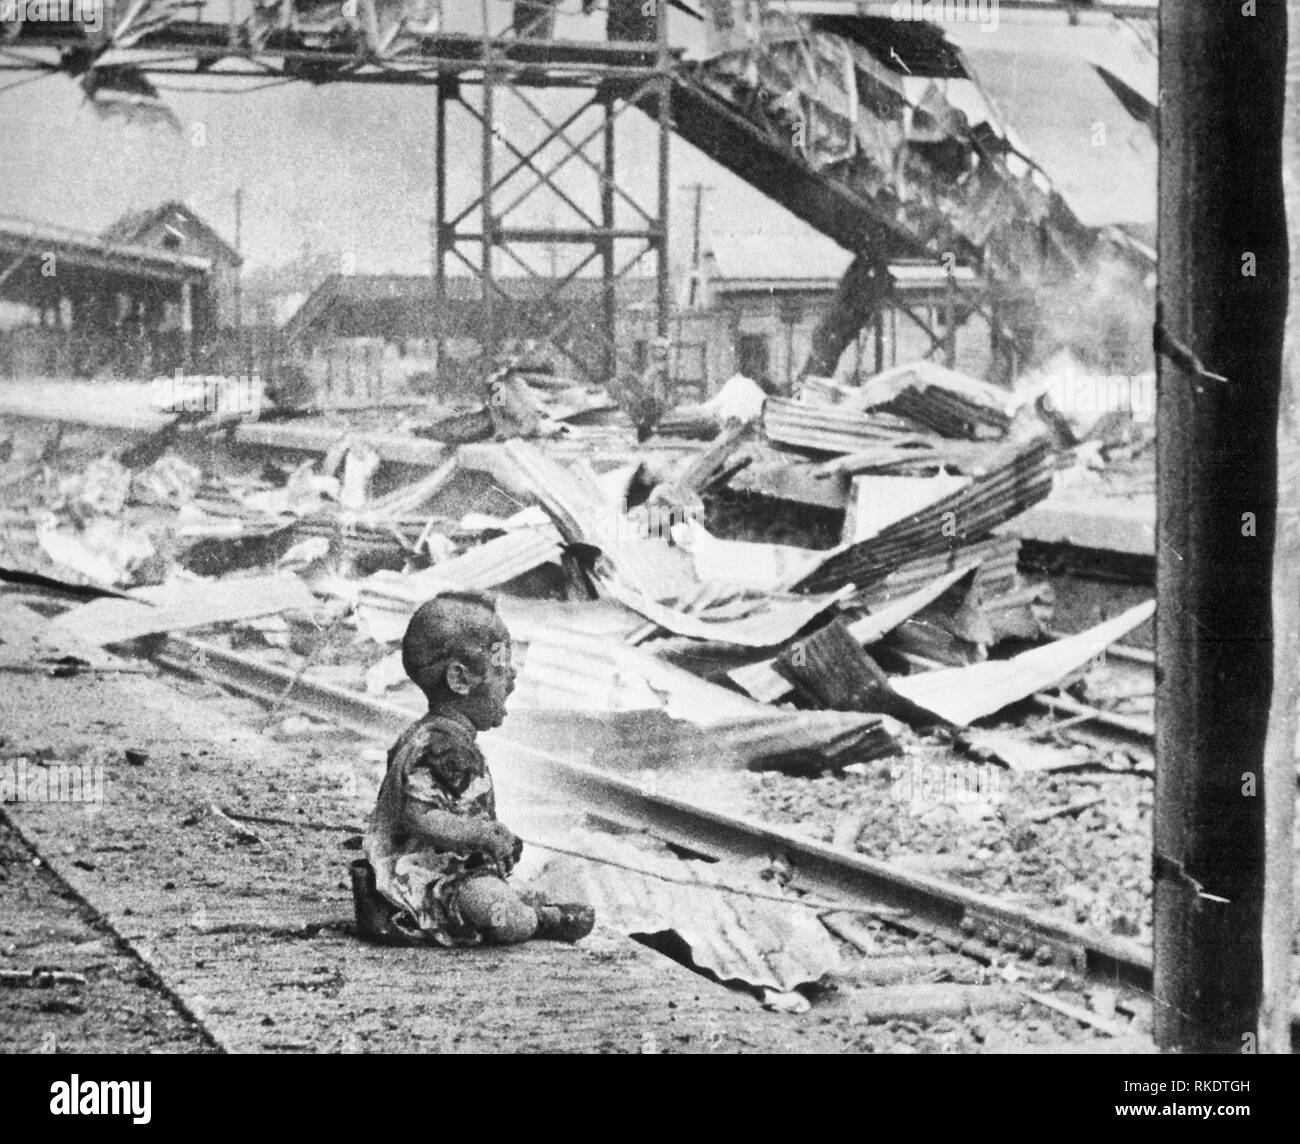 Bloody Saturday -  Baby crying on a platform of Shanghai's South Station after aerial bombing by Japanese forces. This terrified baby was one of the only human beings left alive in Shanghai's South Station after the brutal Japanese bombing in China. August 1937 - Stock Image